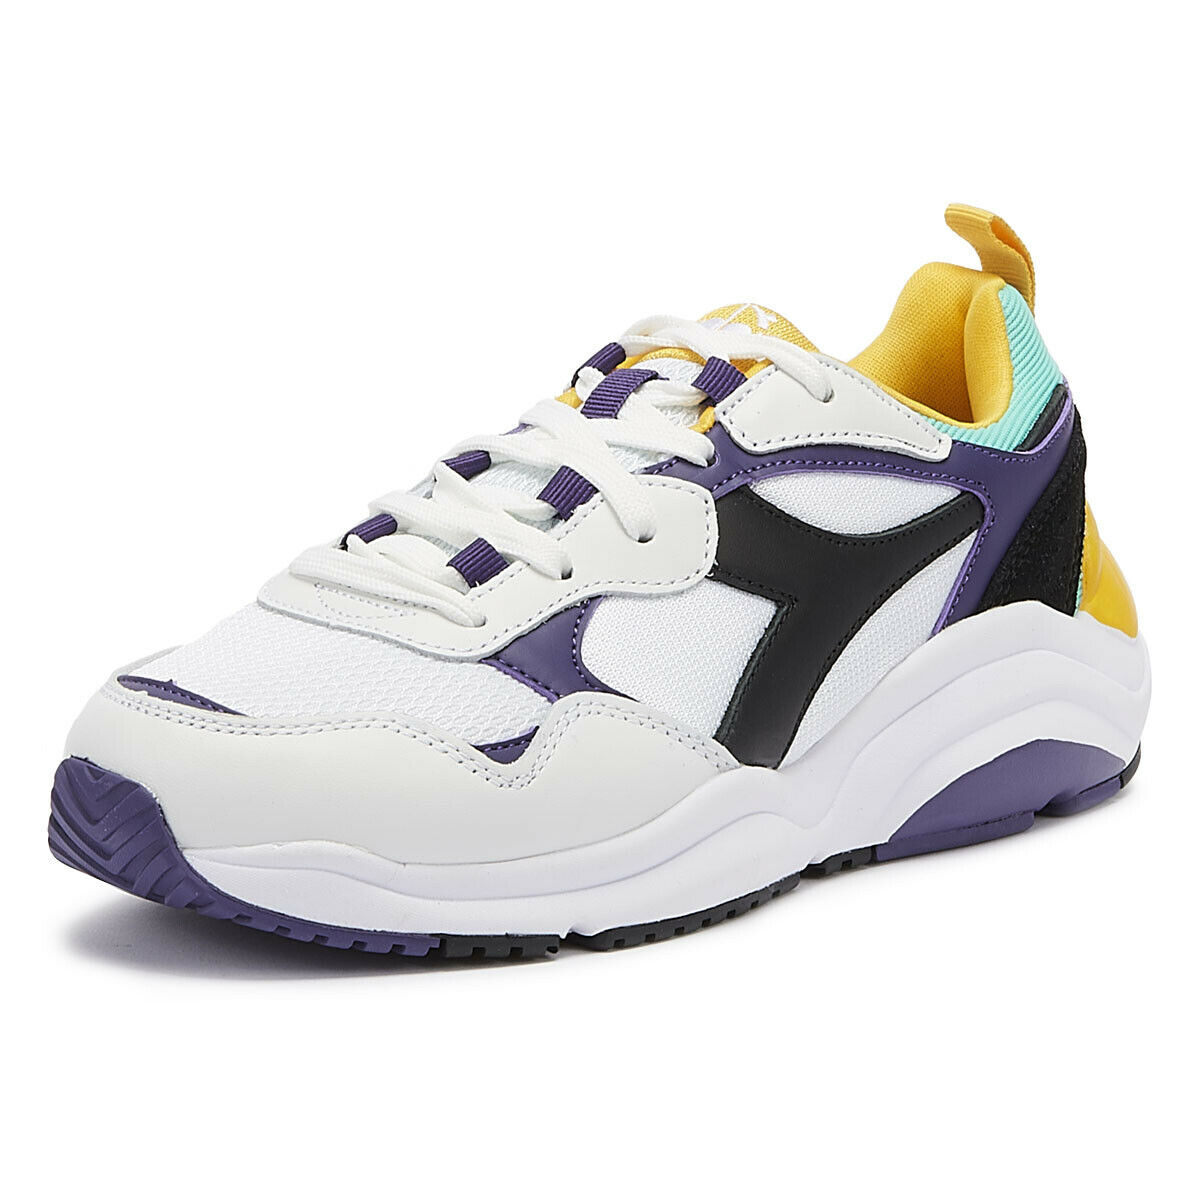 Diadora Whizz Run Mens White   Purple Trainers Lace Up Sport Casual shoes